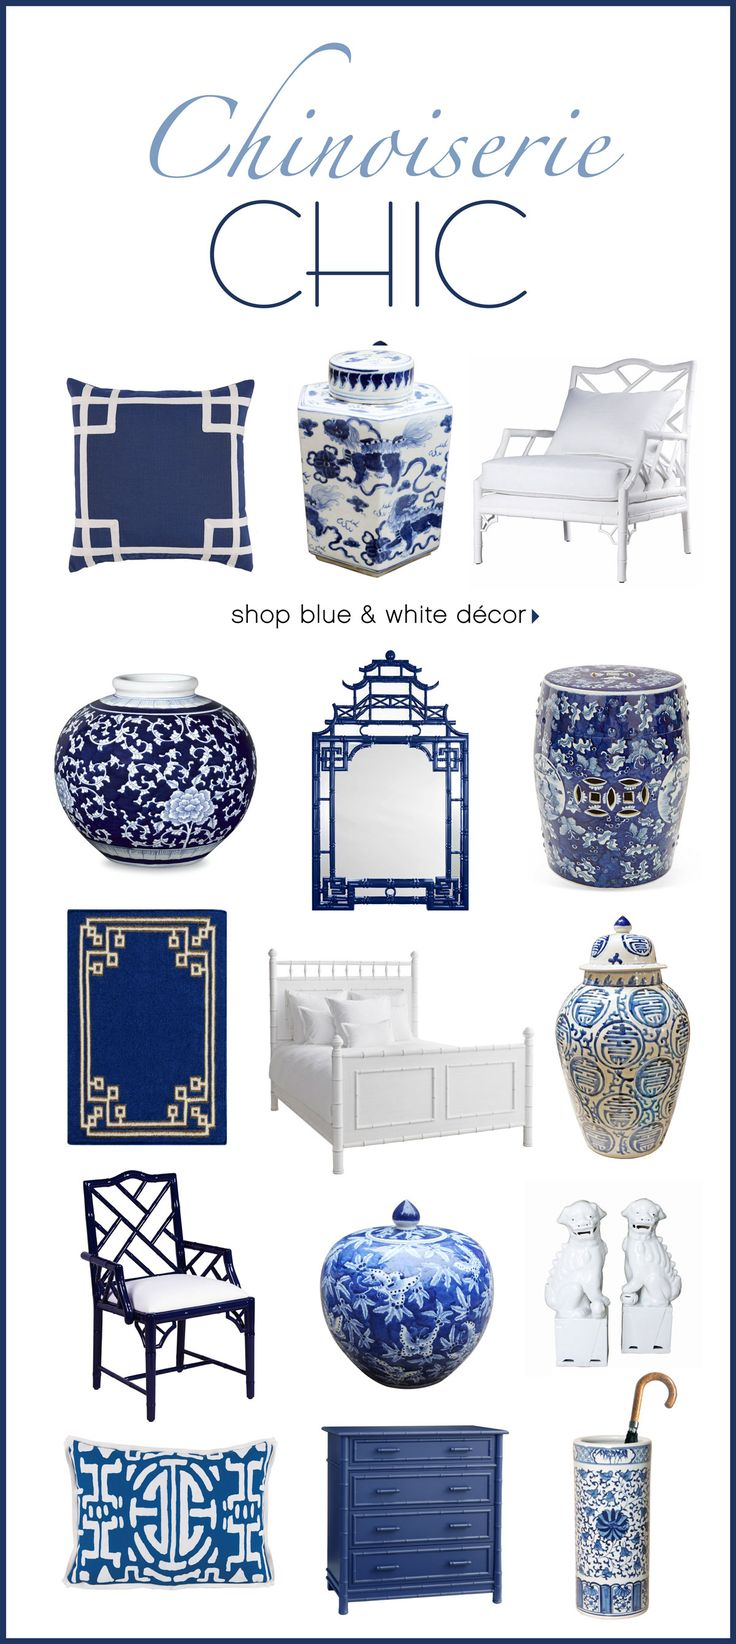 Get Chinoiserie Chic, with our beautiful selection of blue & white accessories, featuring Asian patterns & motifs. It's elegant, fresh and easy to incorporate into your coastal, traditional or modern decor. // SHOP NOW >